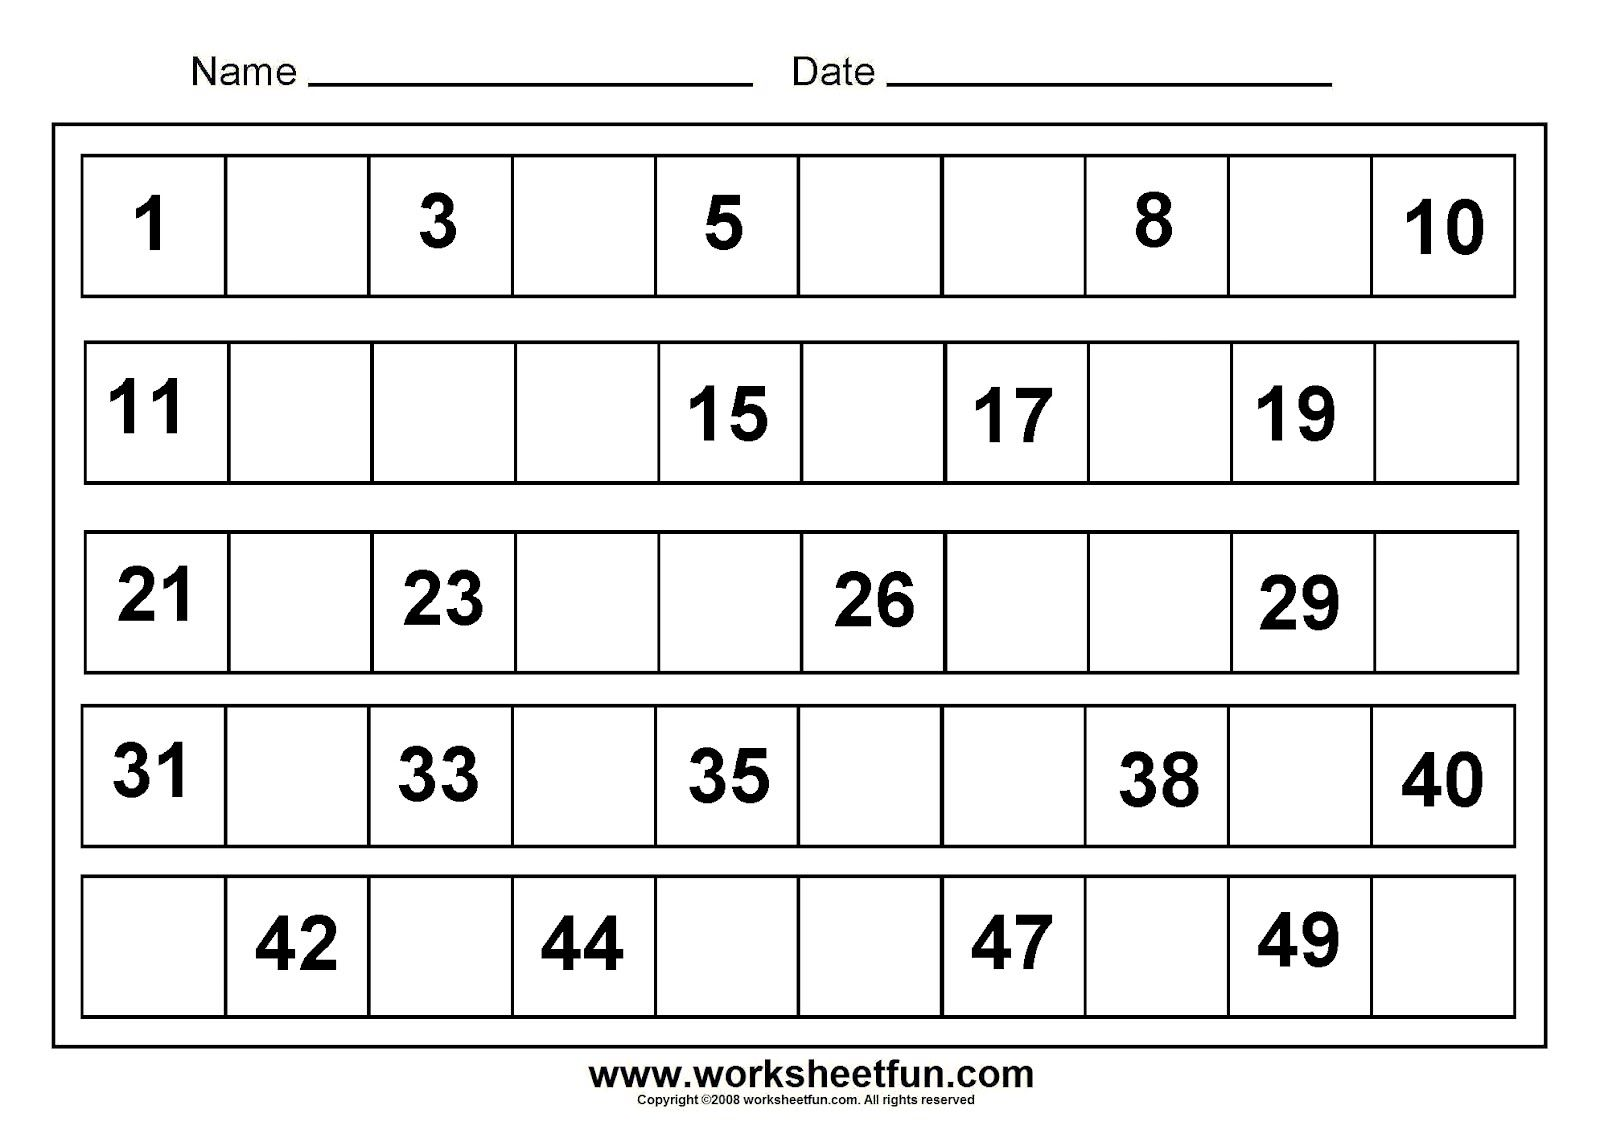 Worksheets Free Math Worksheets For Kindergarten free math worksheets kindergarten printable one less